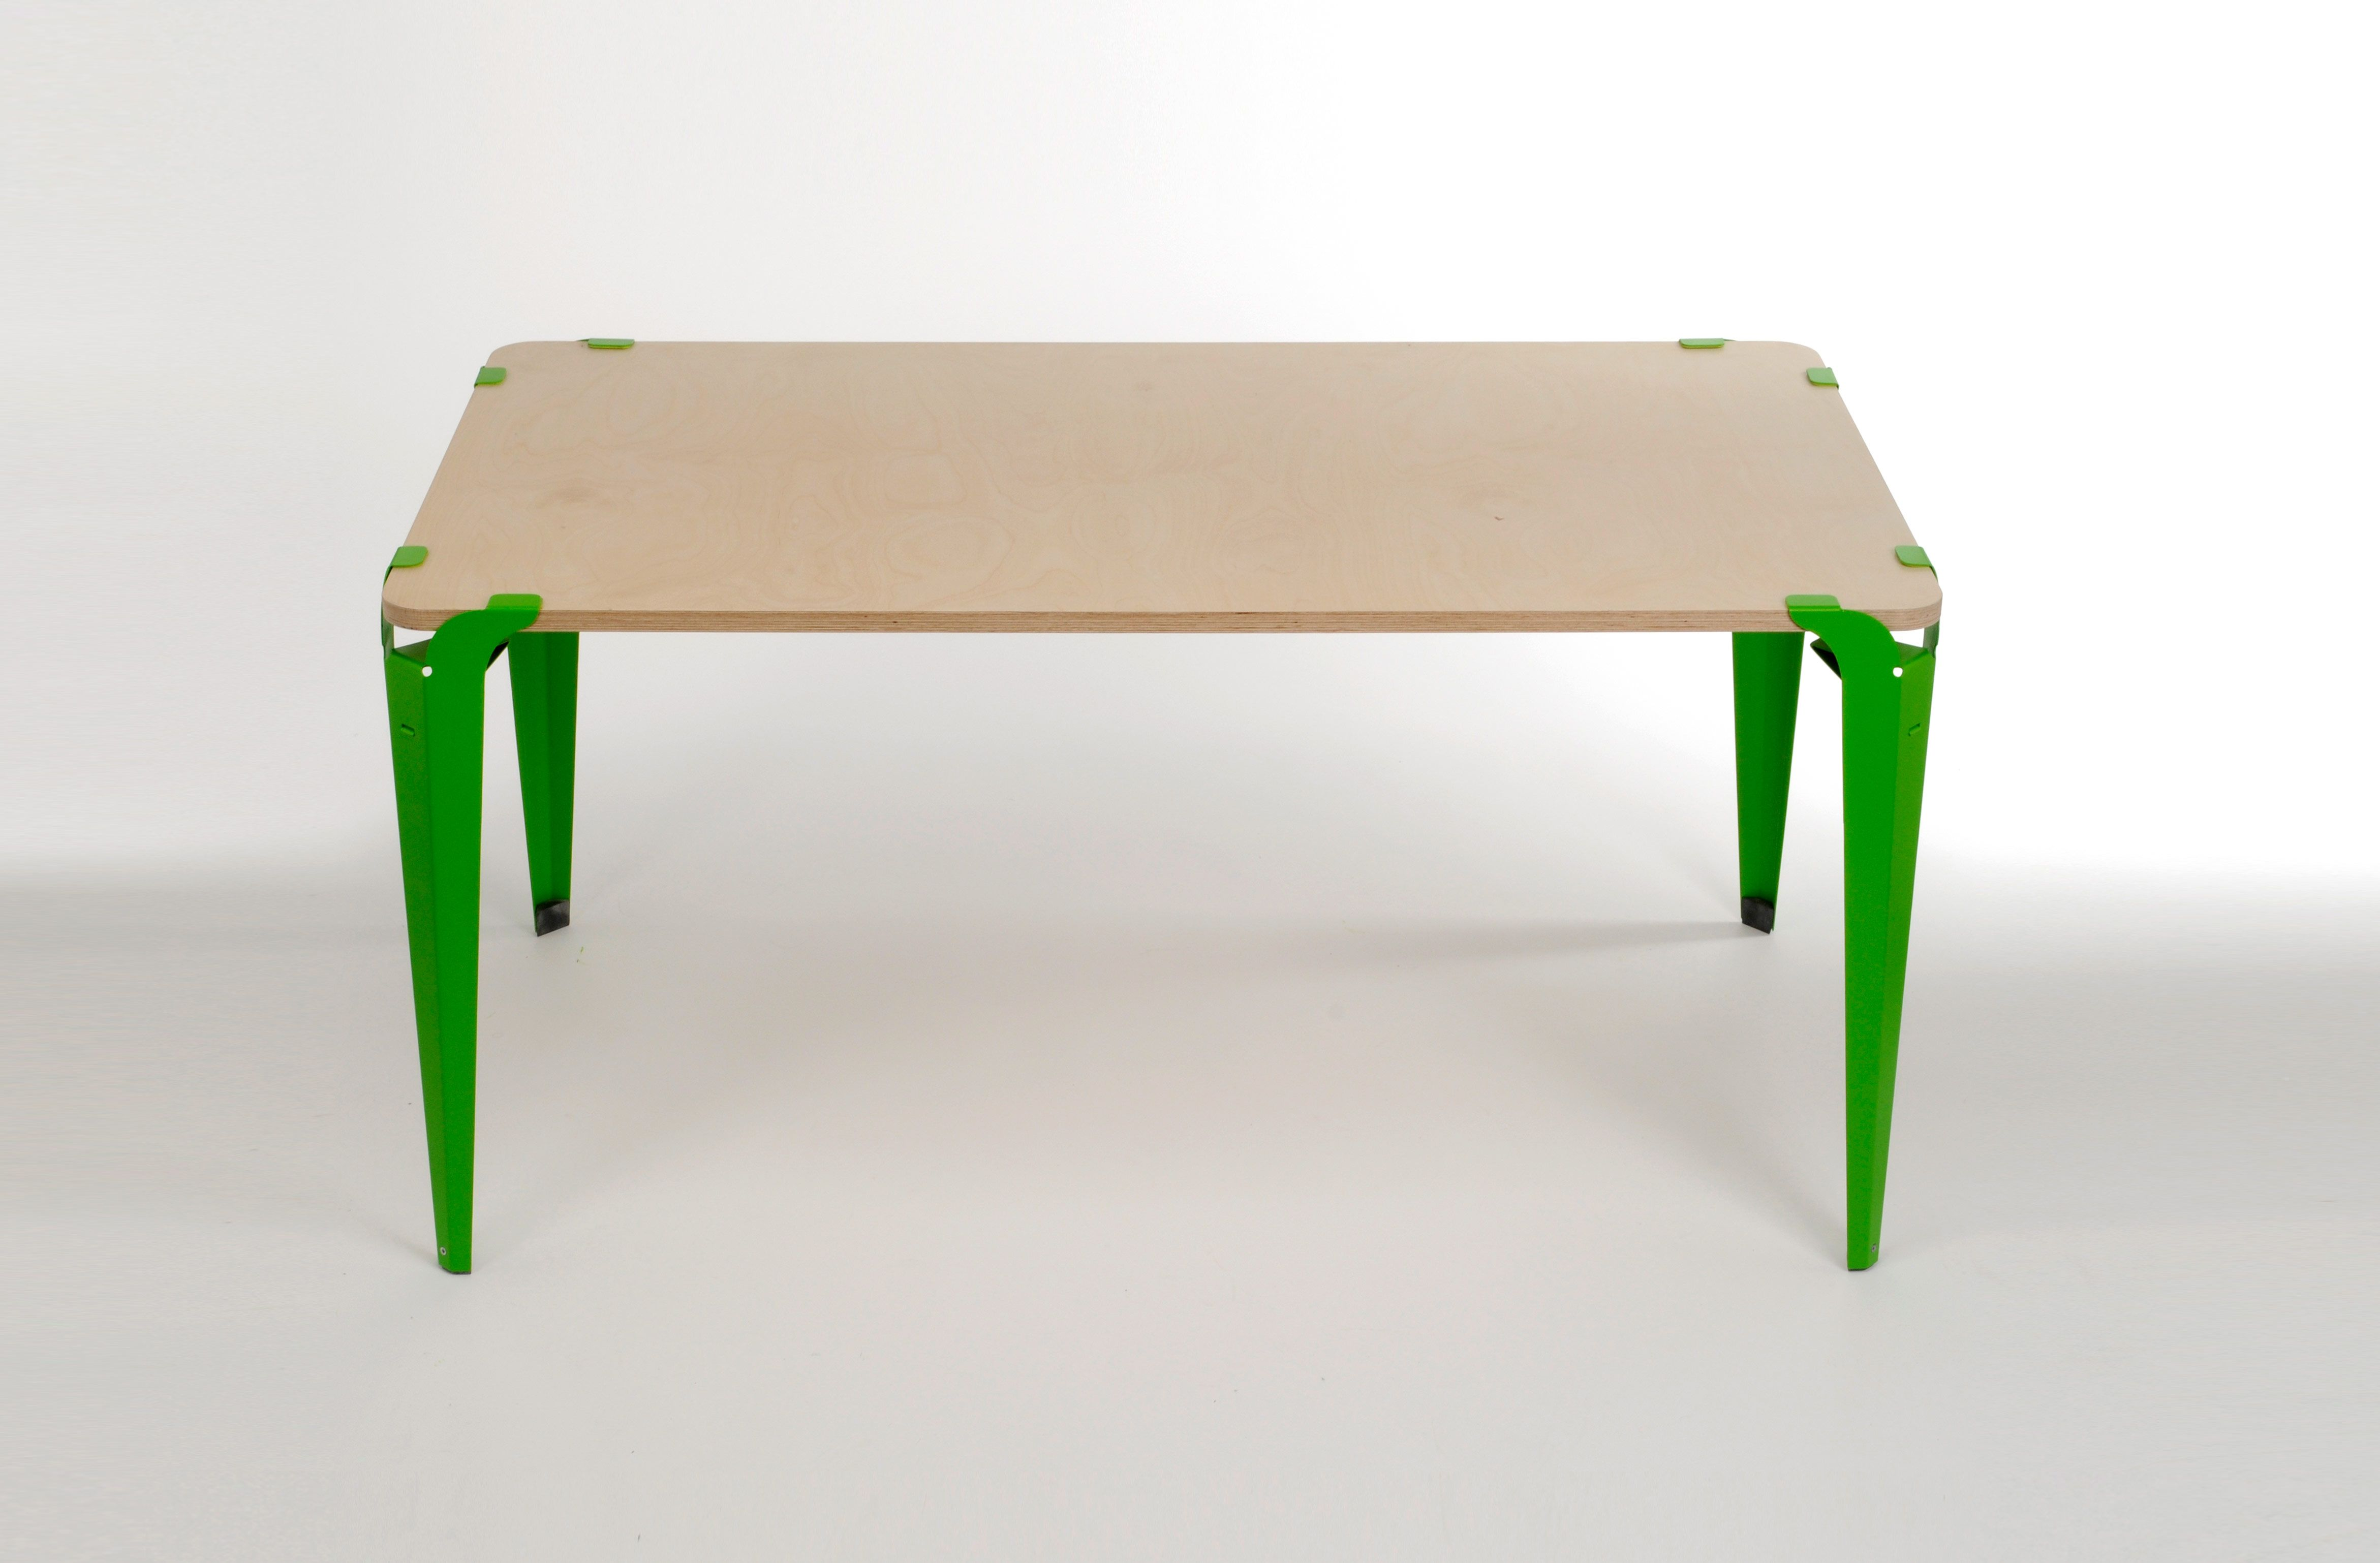 The Clamp Table By Ryan Sorrell   Not For Sale Anywhere Yet   A Brilliantly  Simple Design | Custom Table Supplies | Pinterest | Simple Designs,  Tabletop And ...